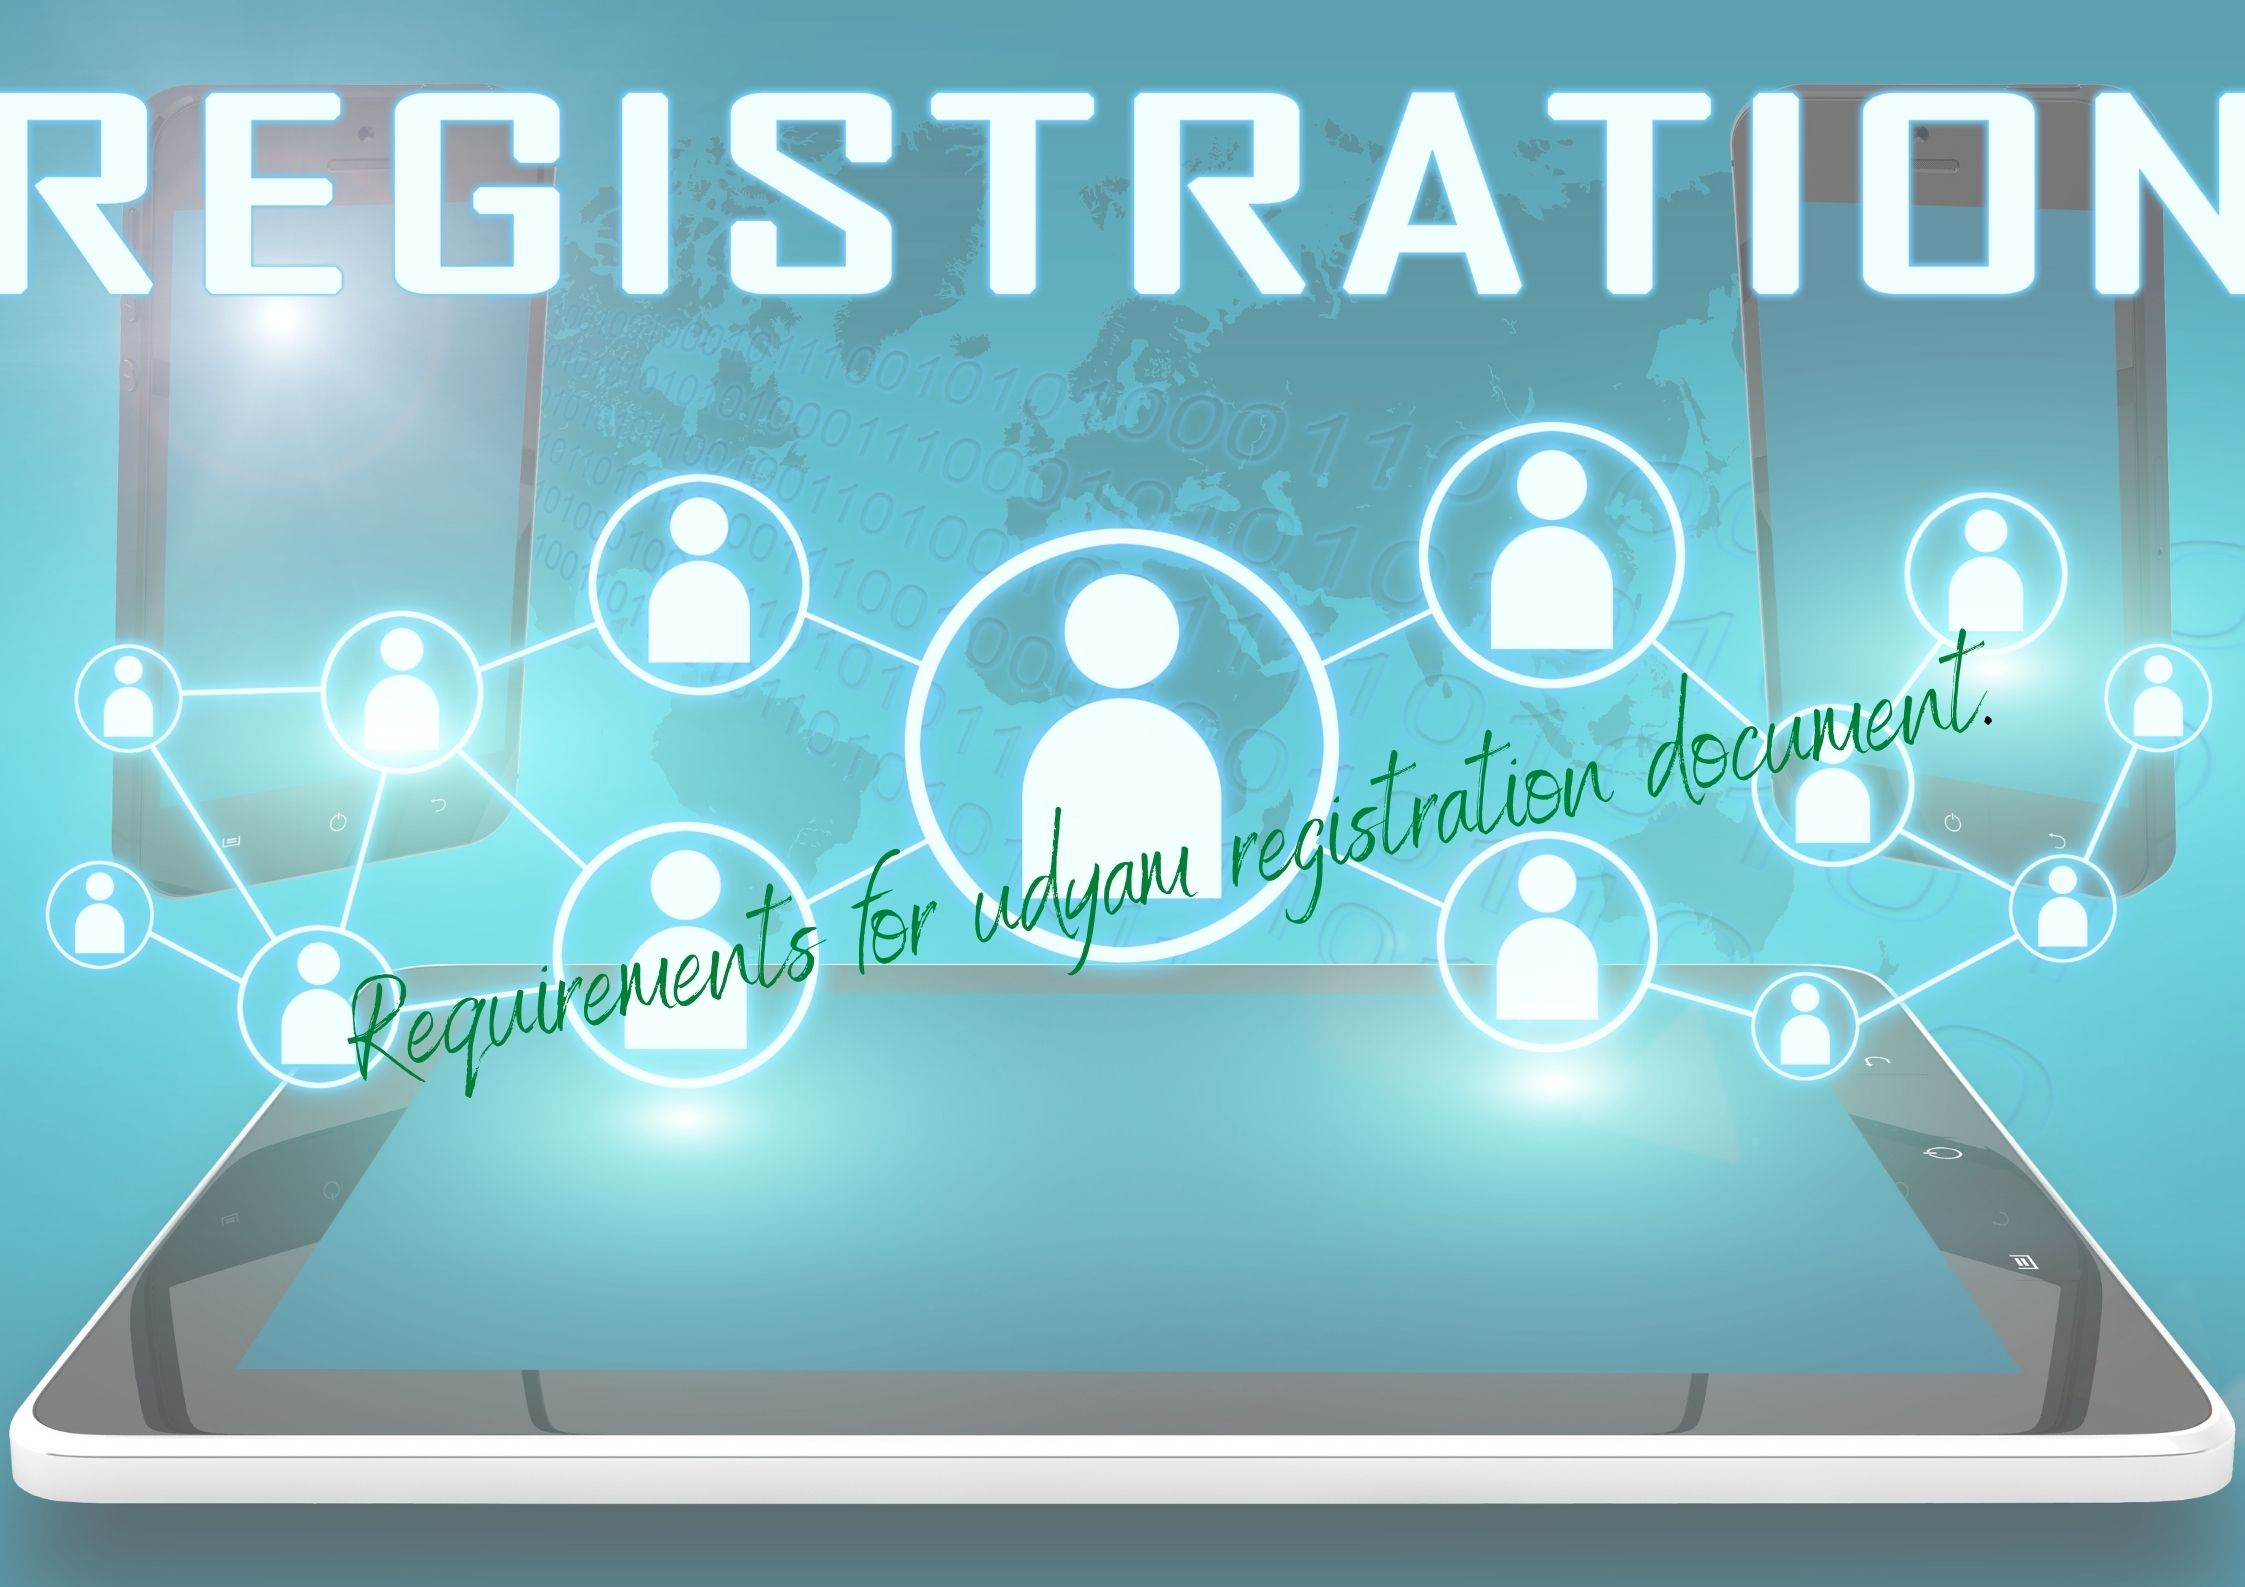 Requirements for udyam registration document.